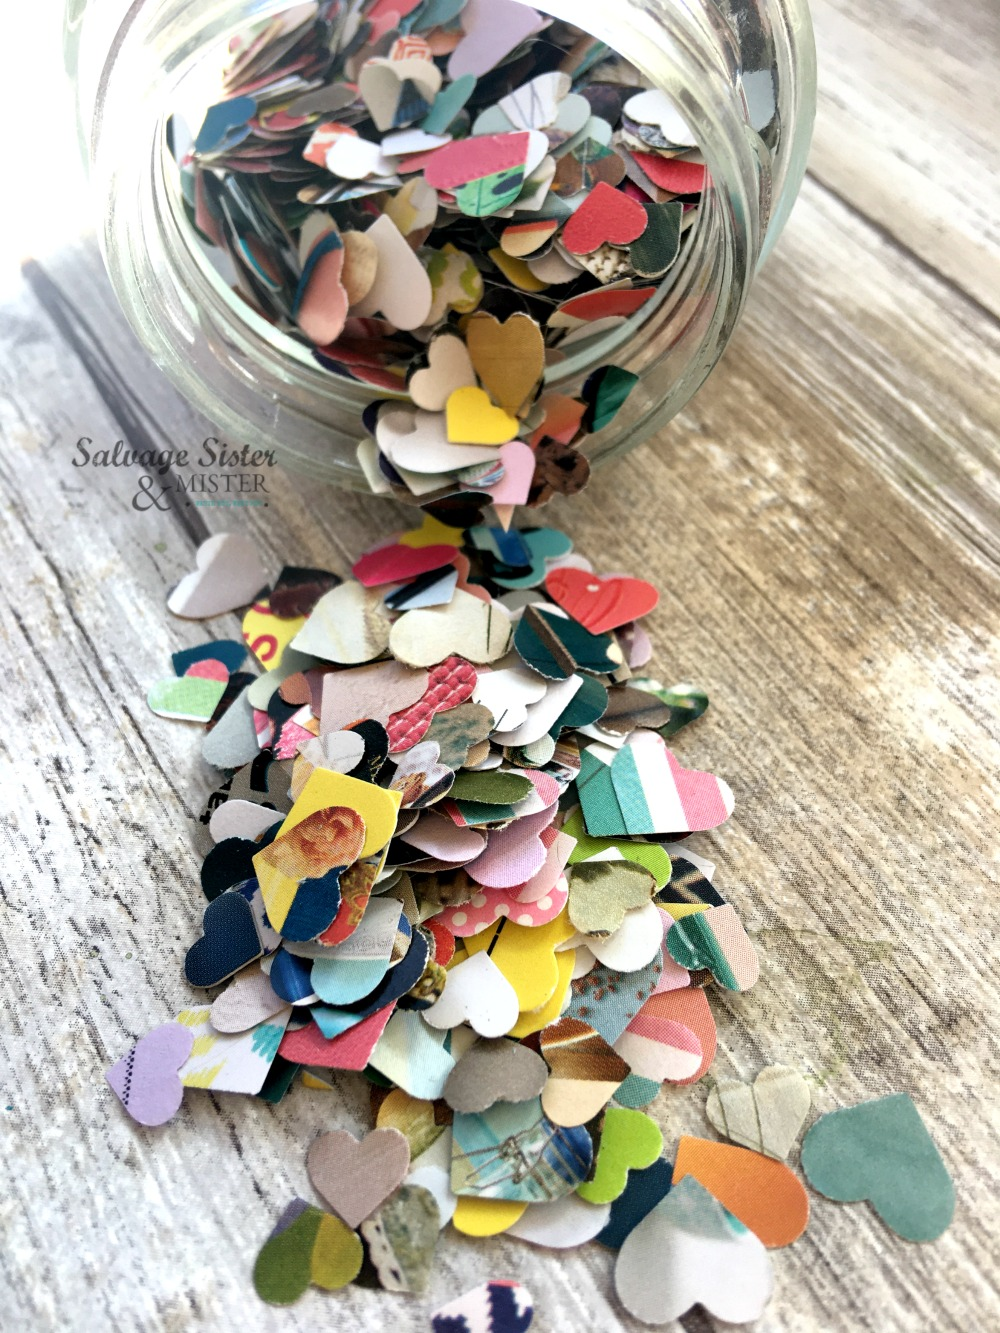 Turn your discarded catalogs or colorful mail into junk mail confetti. This is much more earth-friendly than traditional confetti options. Waste not, want not. Get the info on this fun craft on salvagesisterandmister.com